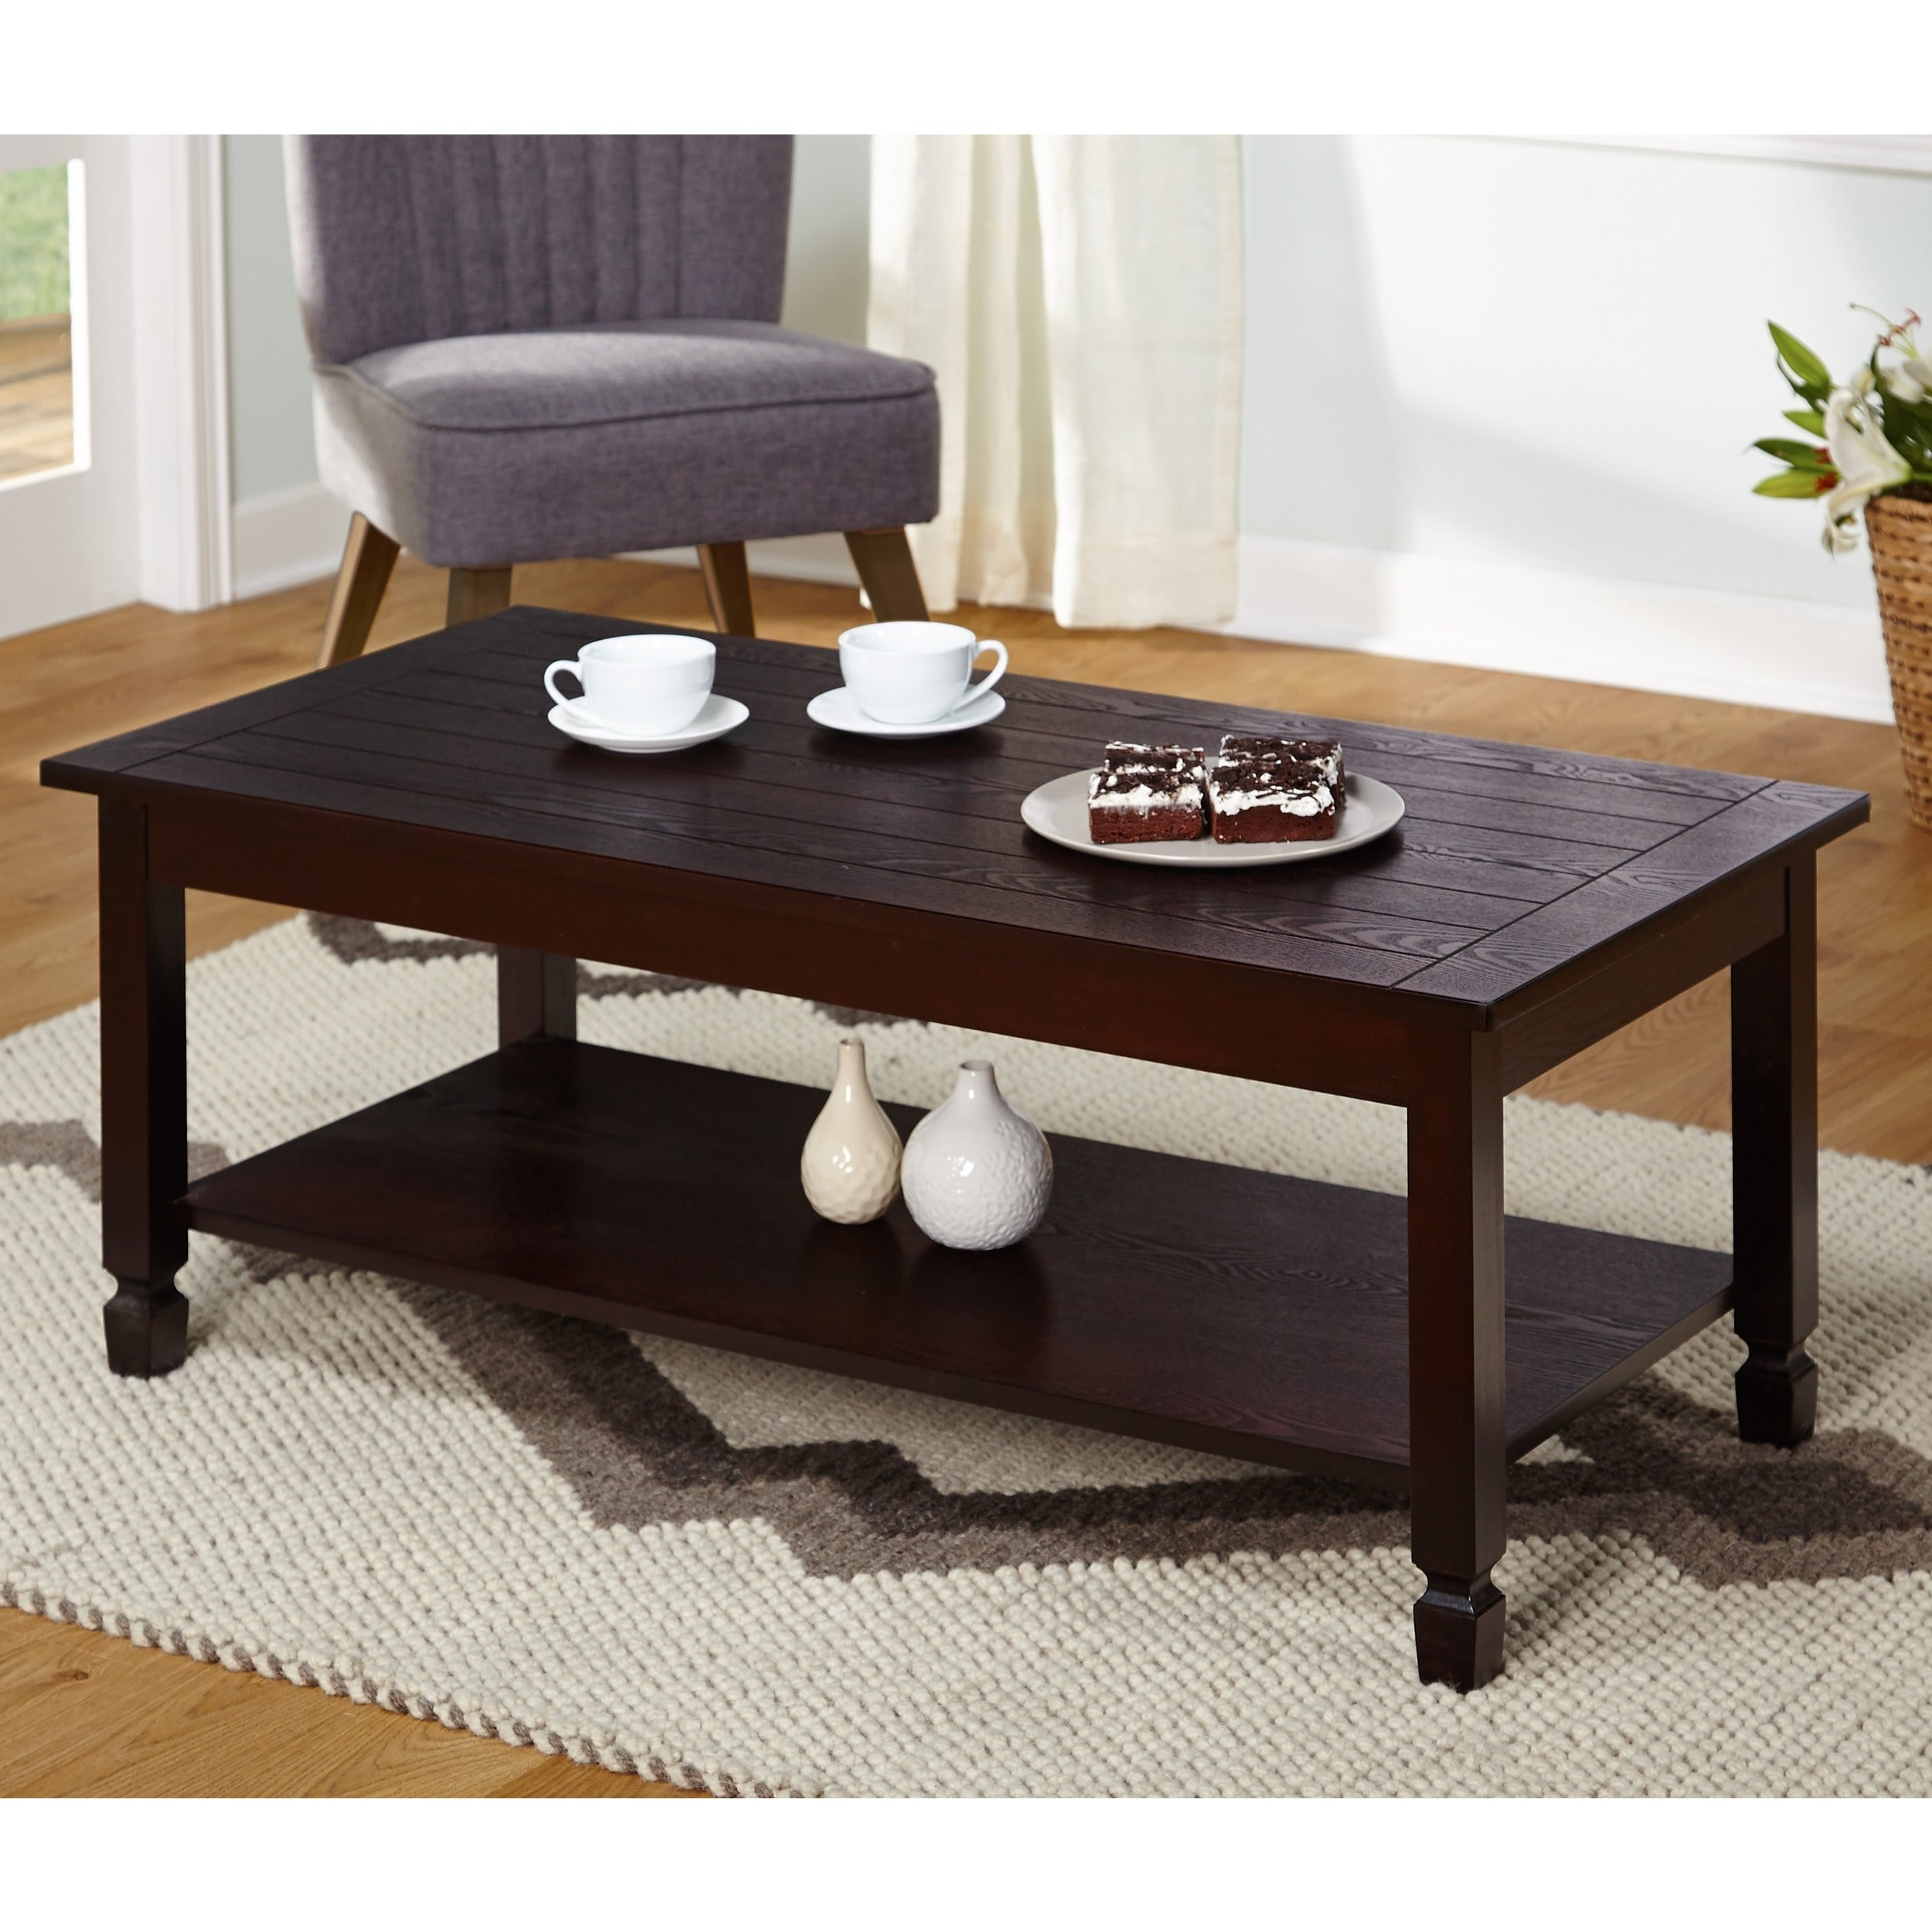 zenith cocktail table, espresso - walmart